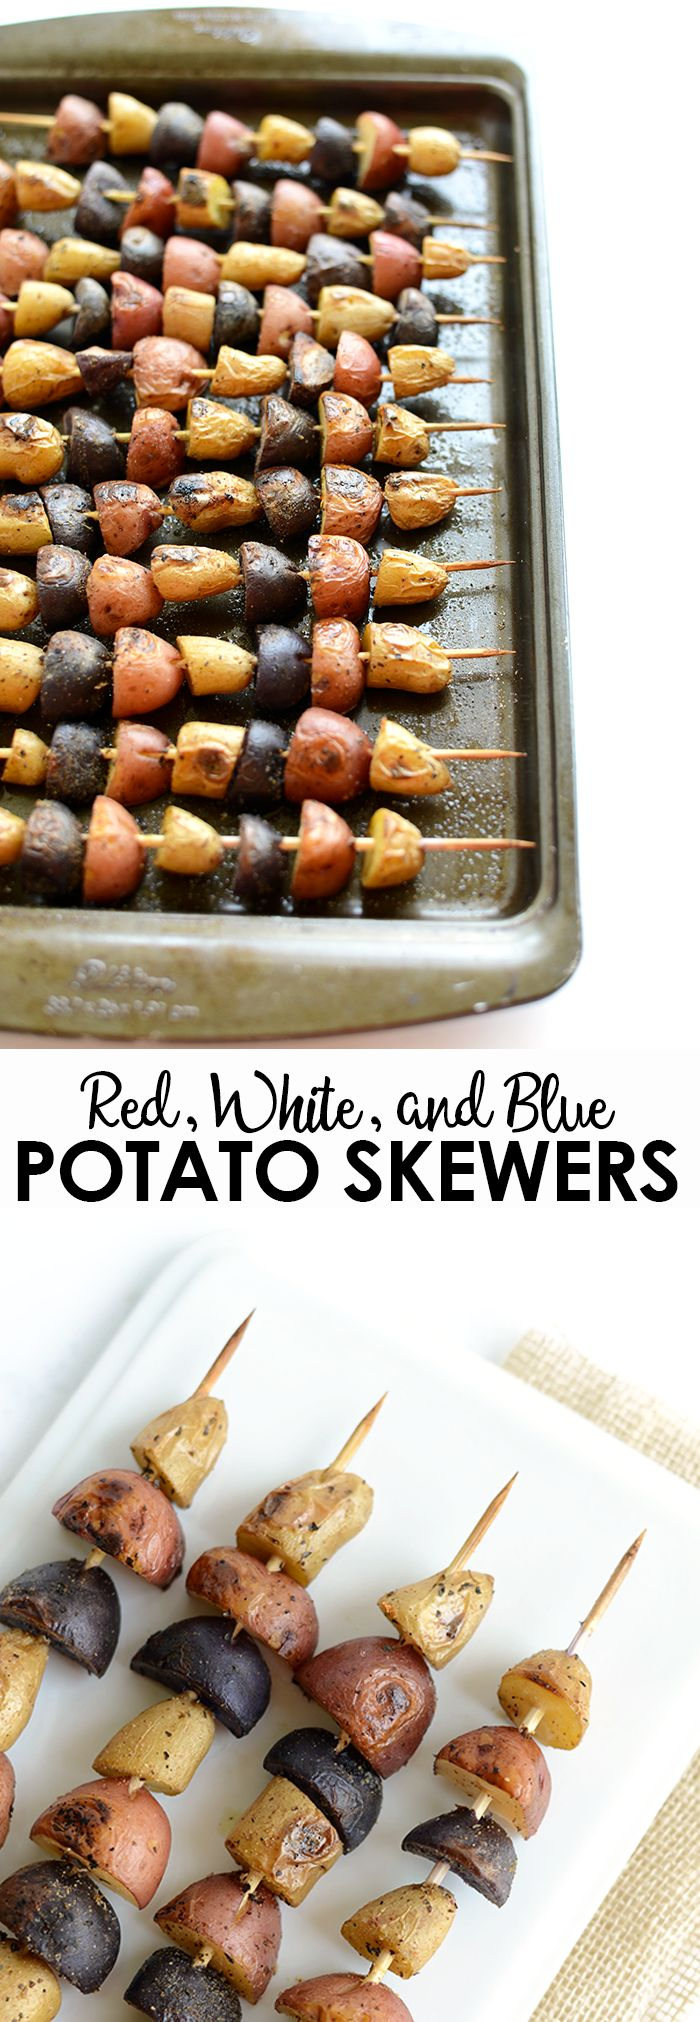 Get festive with these red, white, and blue potato skewers! They're easy to make and the perfect side at a Summer BBQ. Plus- they make for great leftovers the next morning!